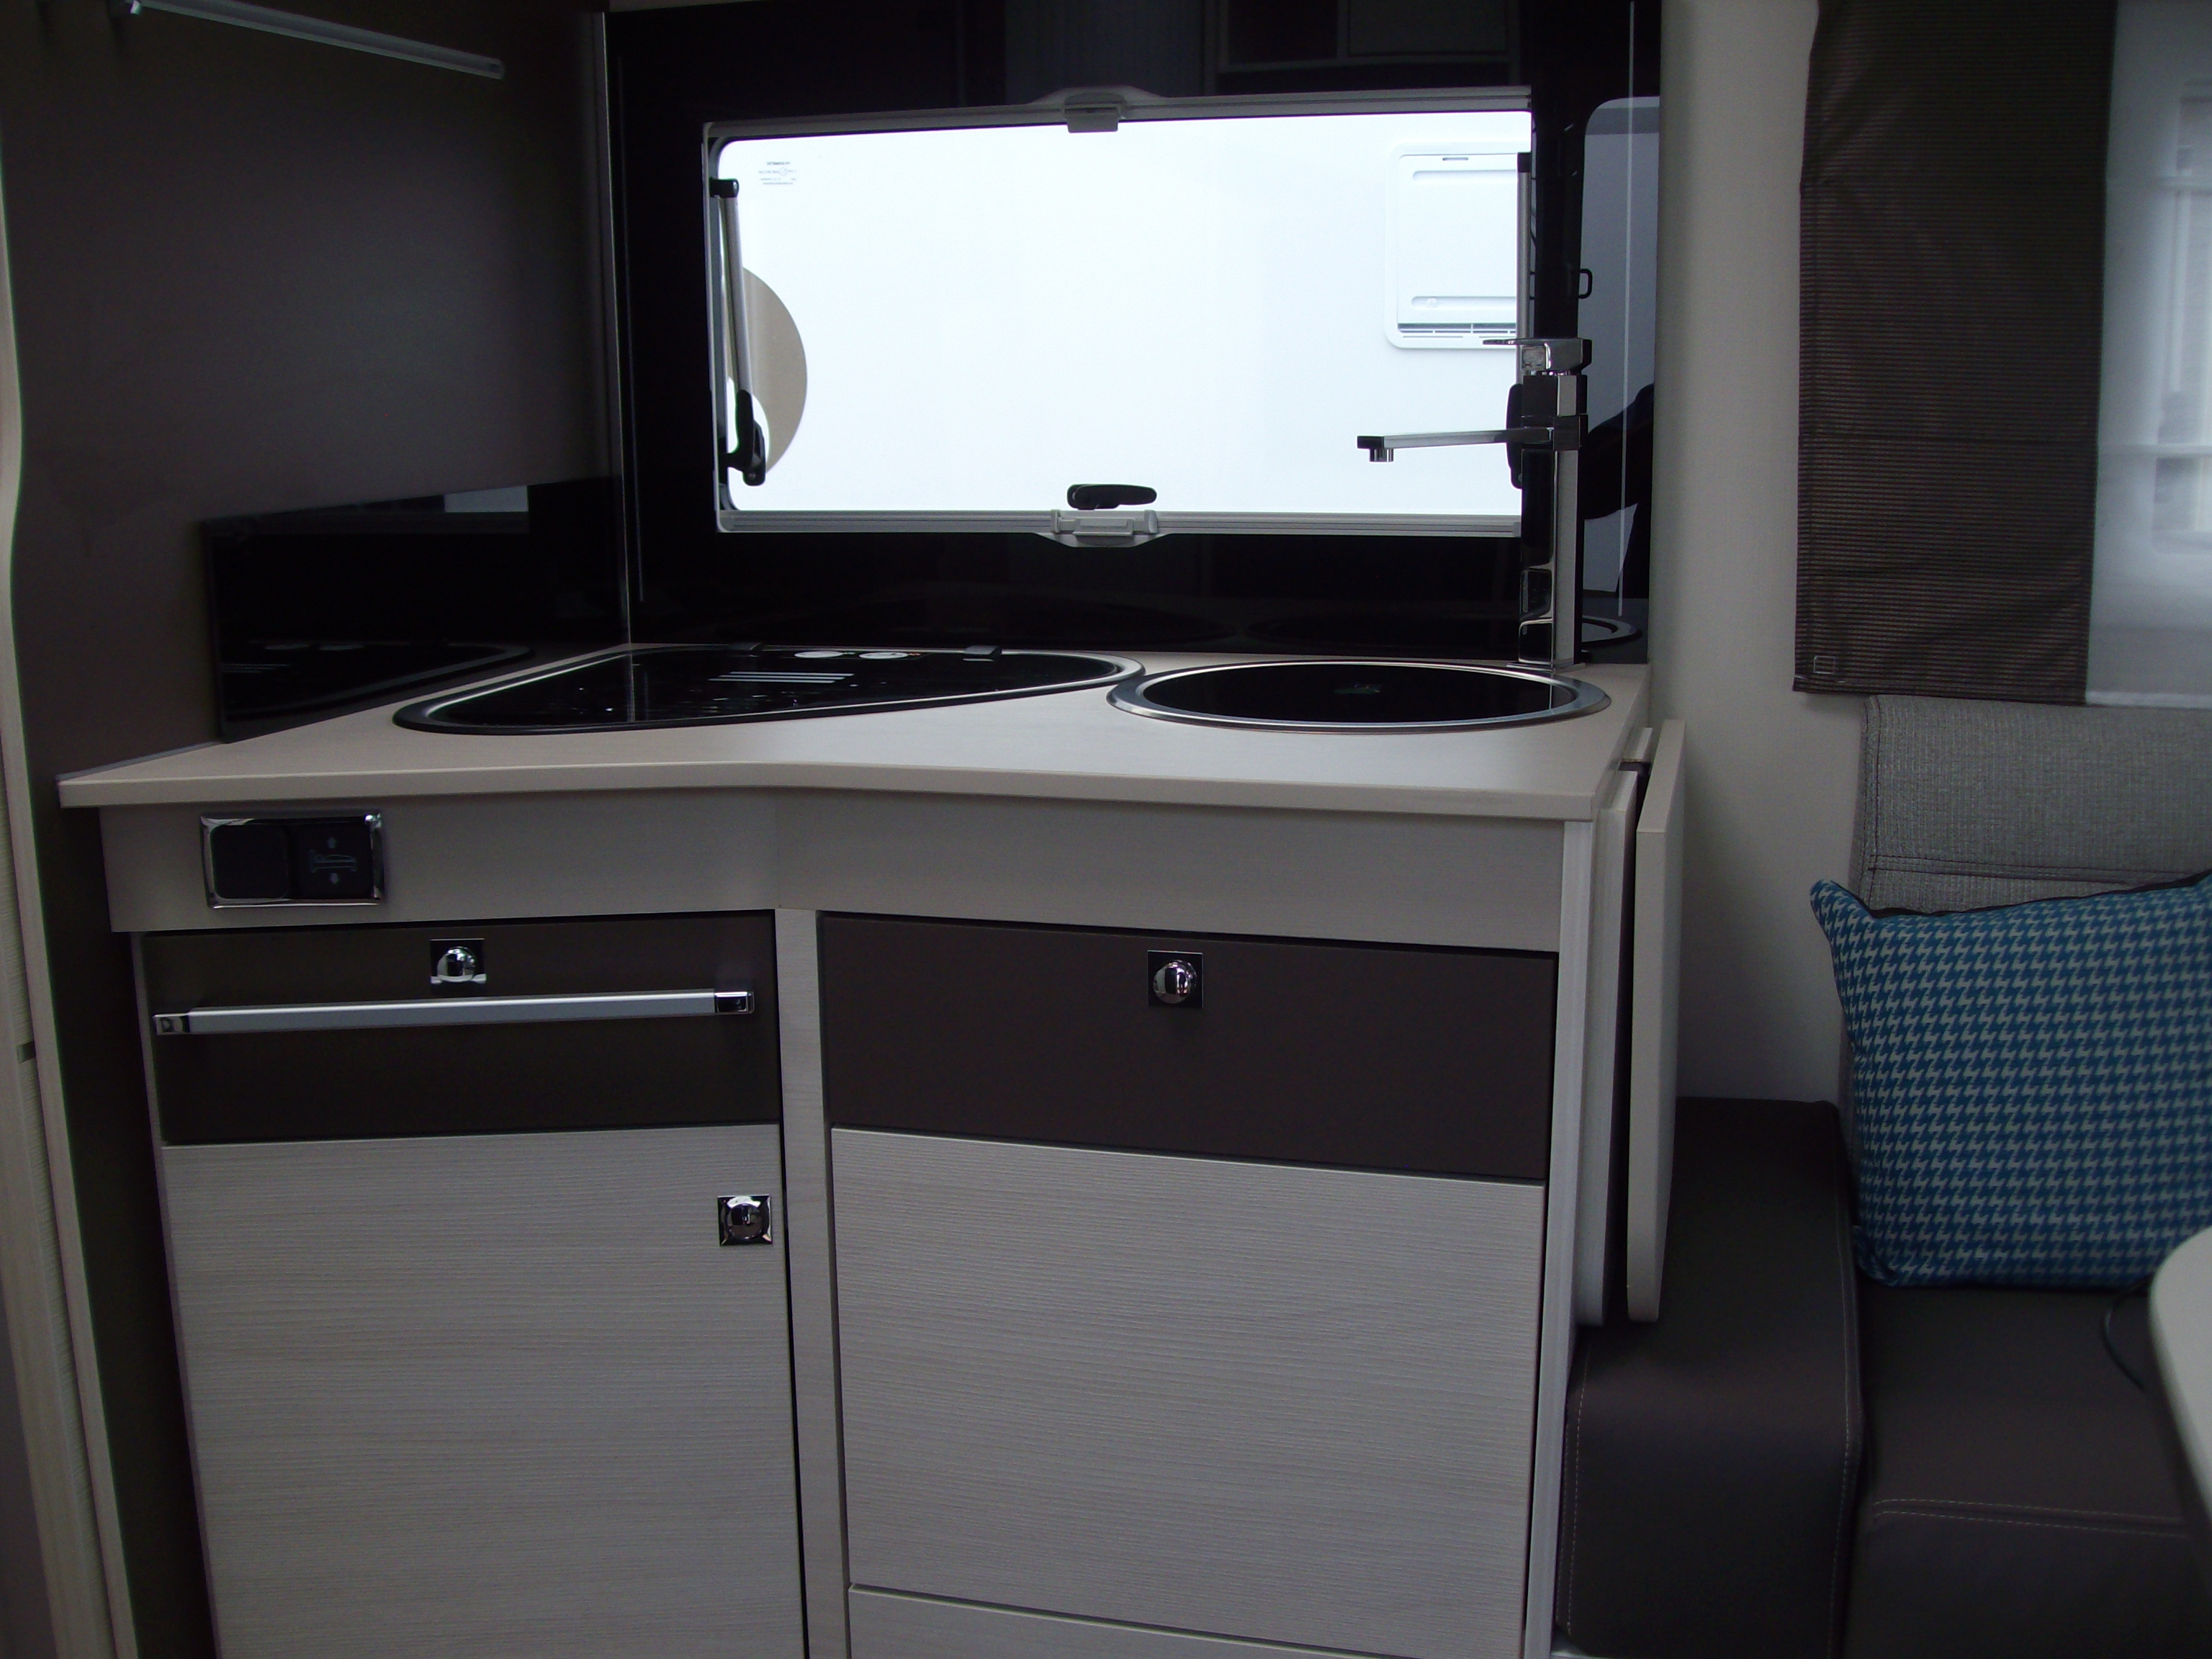 Chausson Welcome 738 Xlb - 5